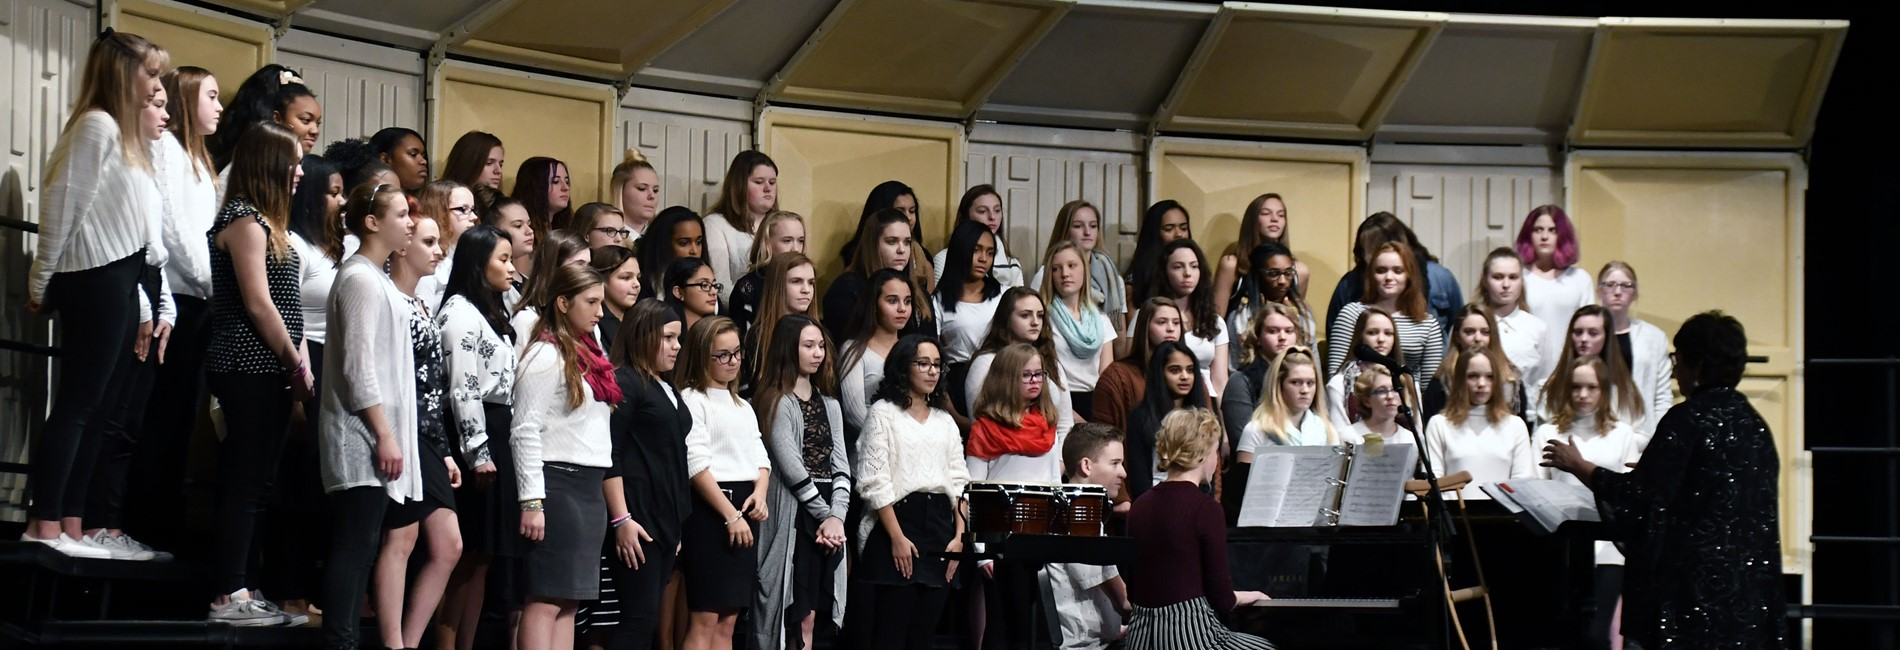 8th grade girls choir